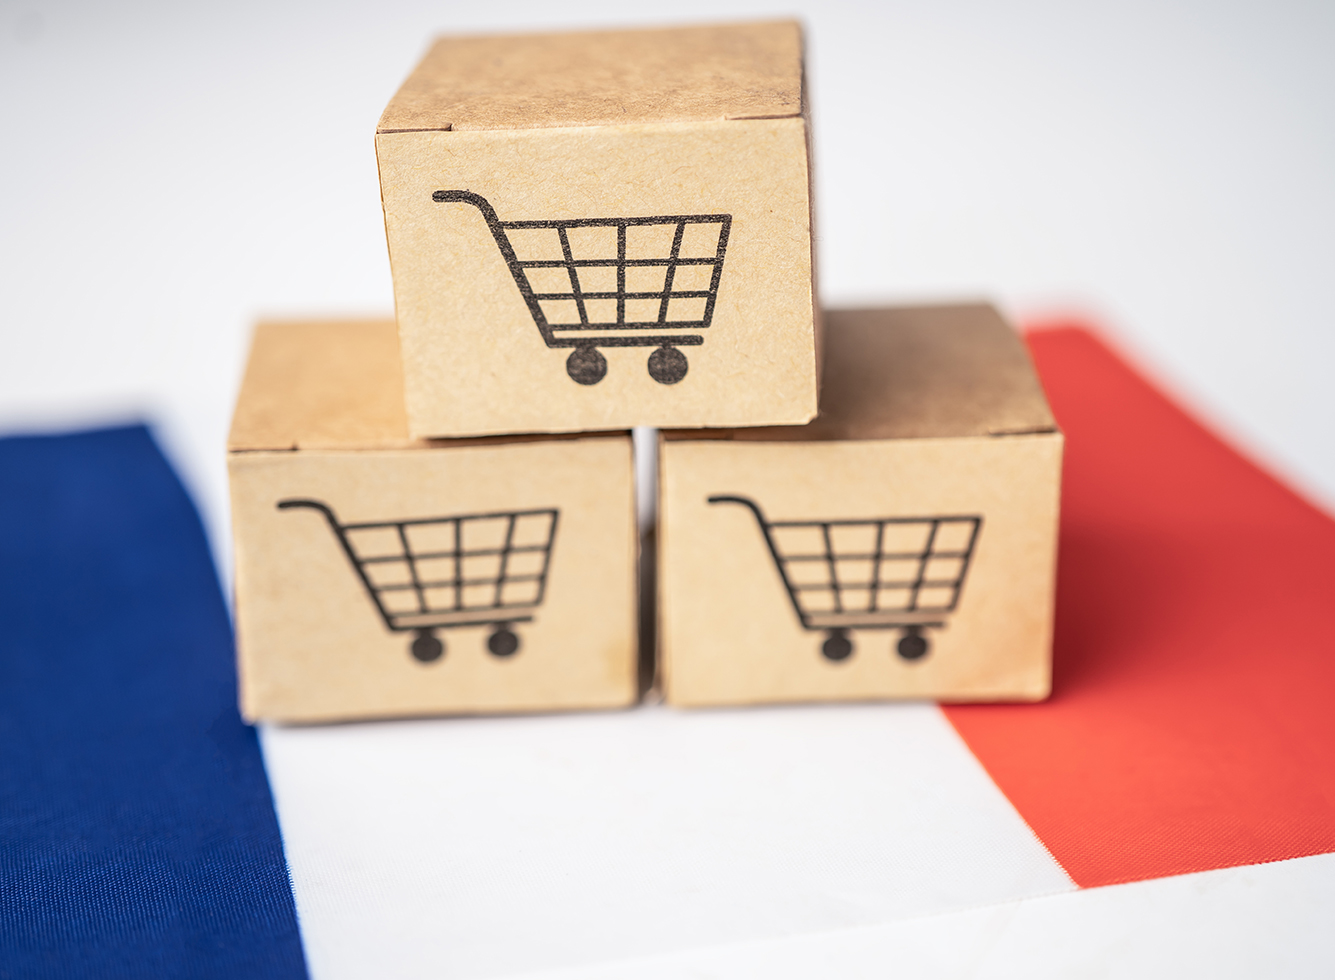 Discovering the Top French Online Marketplaces